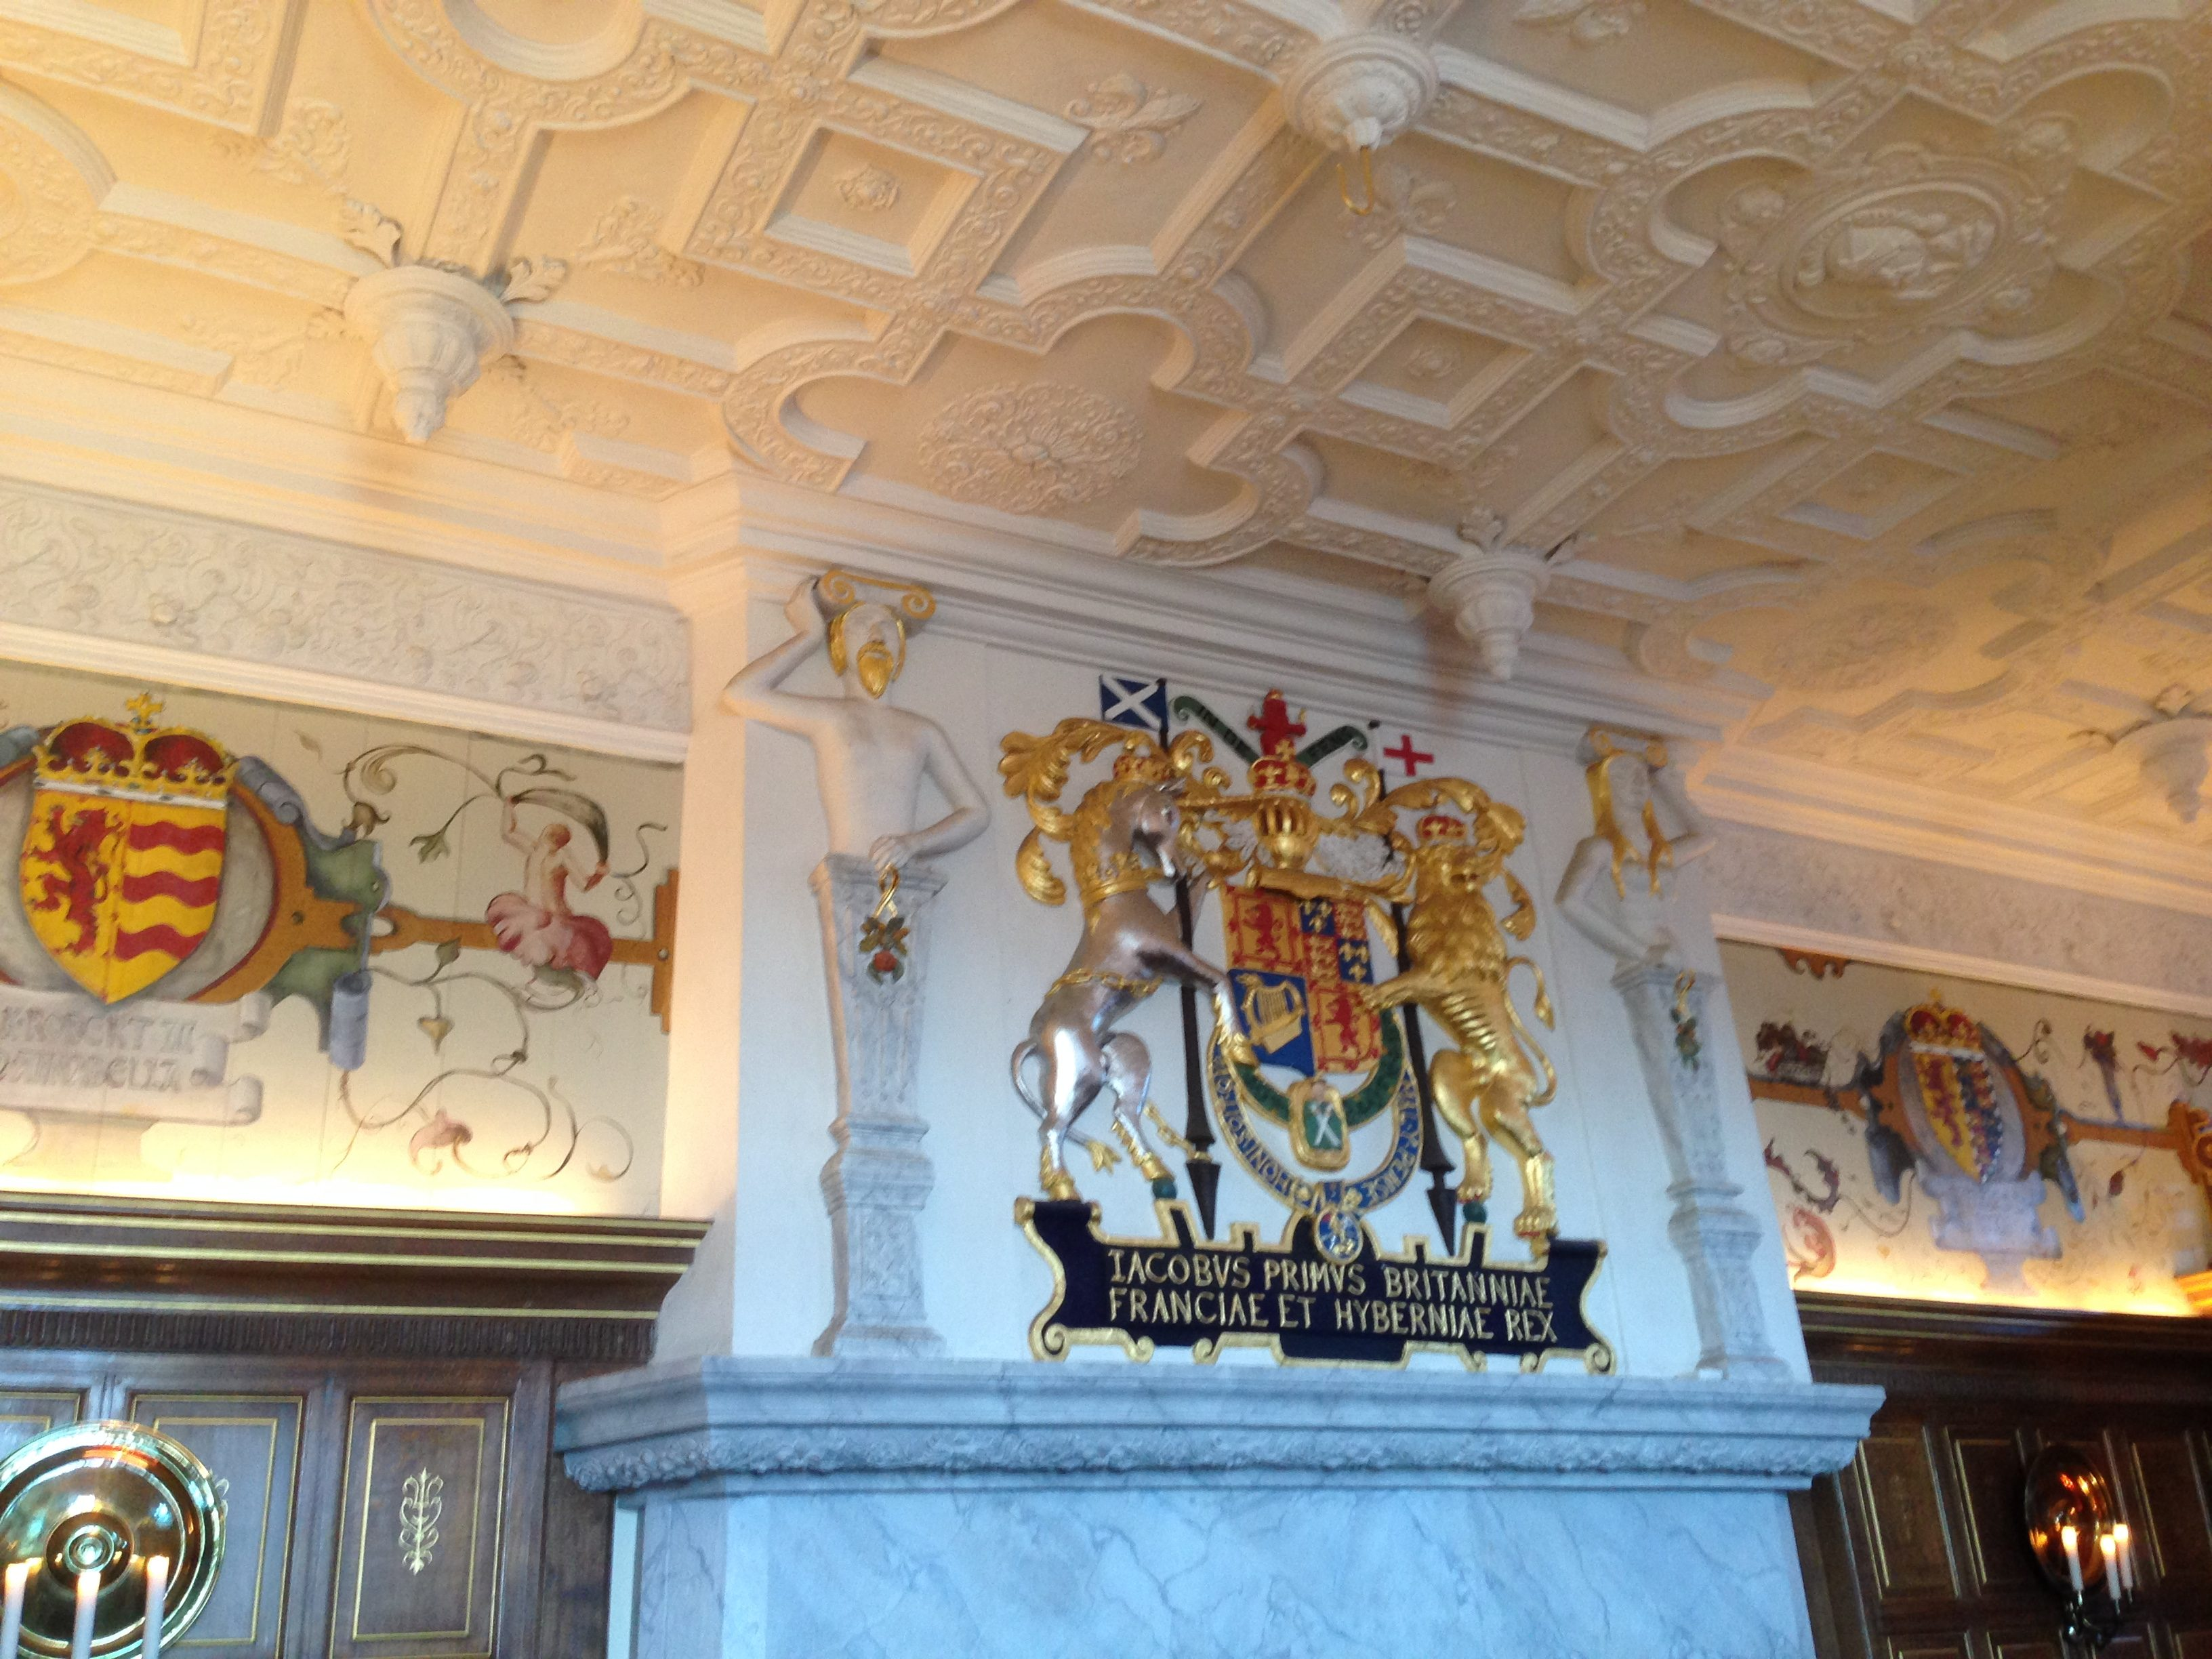 The coat of arms above the fireplace in the Laich Hall at Edinburgh Castle